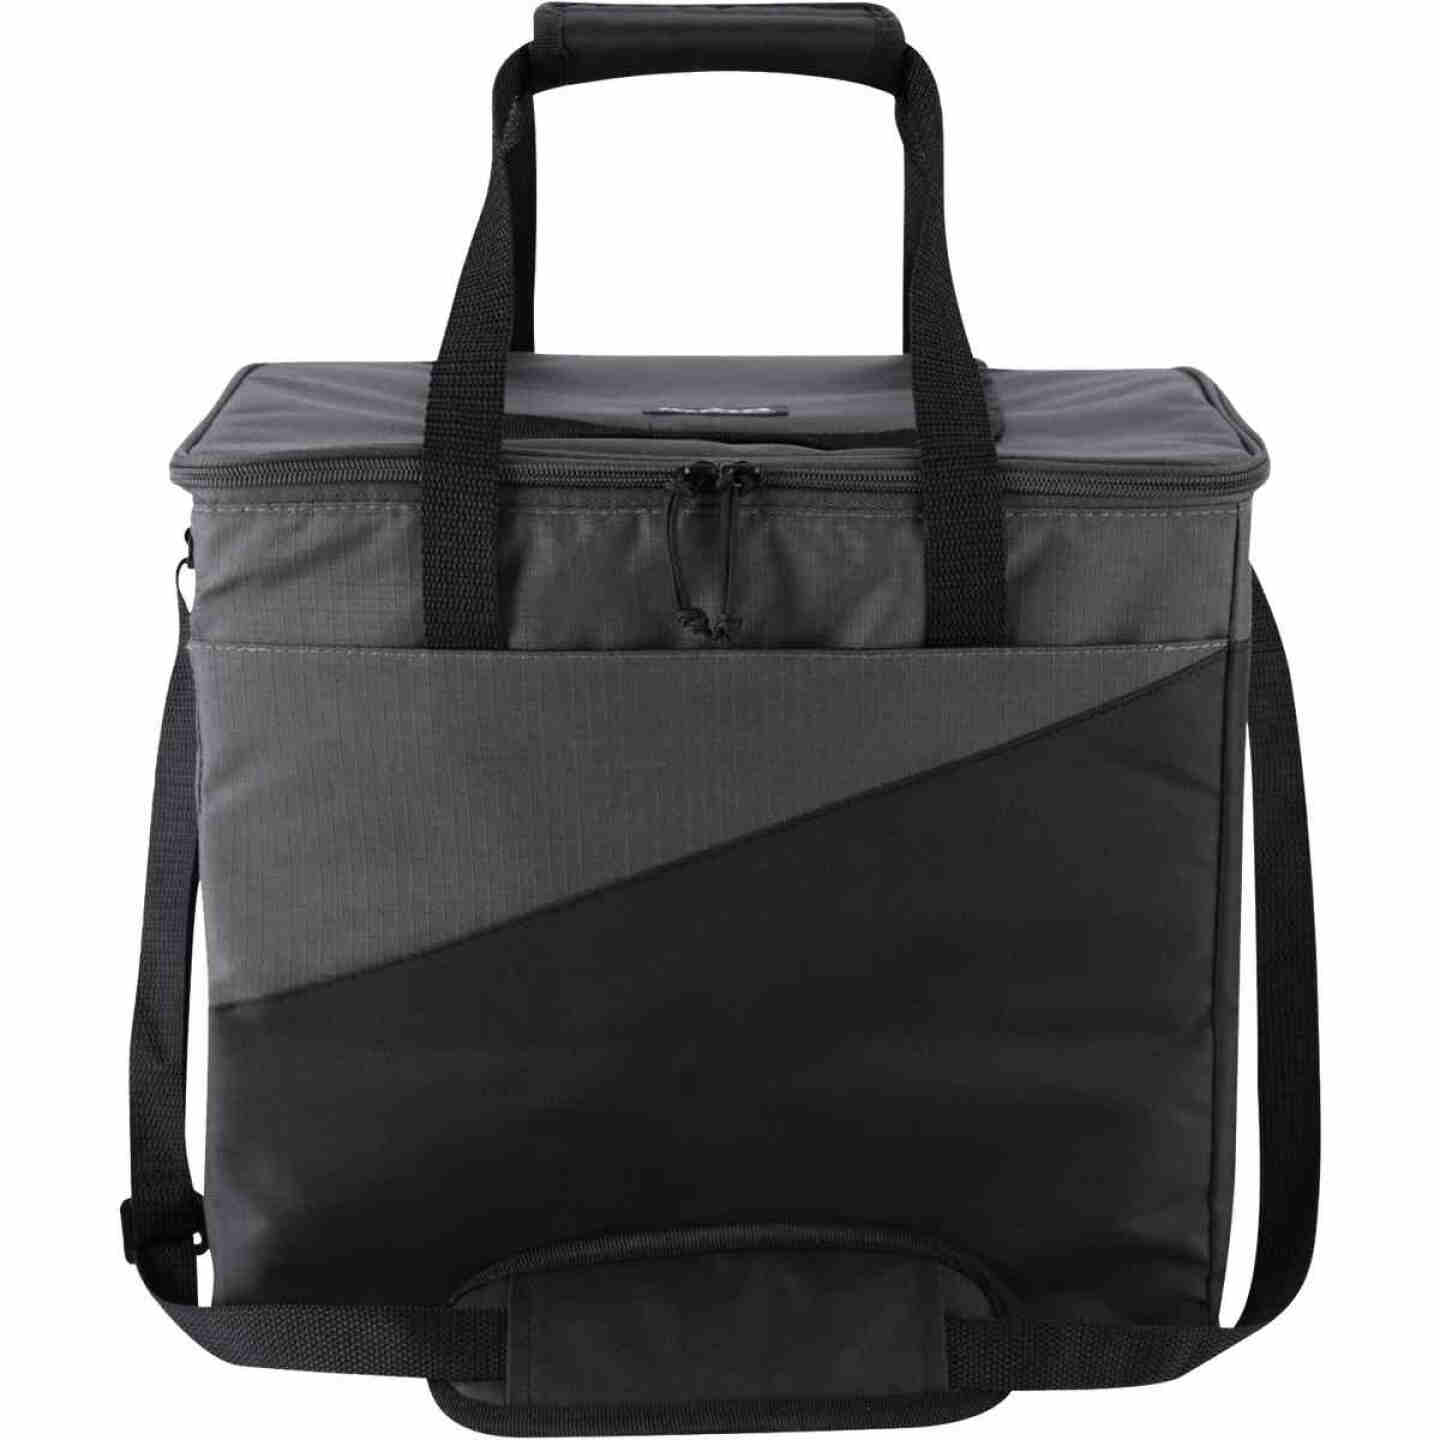 Igloo Collapse & Cool 36-Can Soft-Side Cooler, Gray & Black Image 2